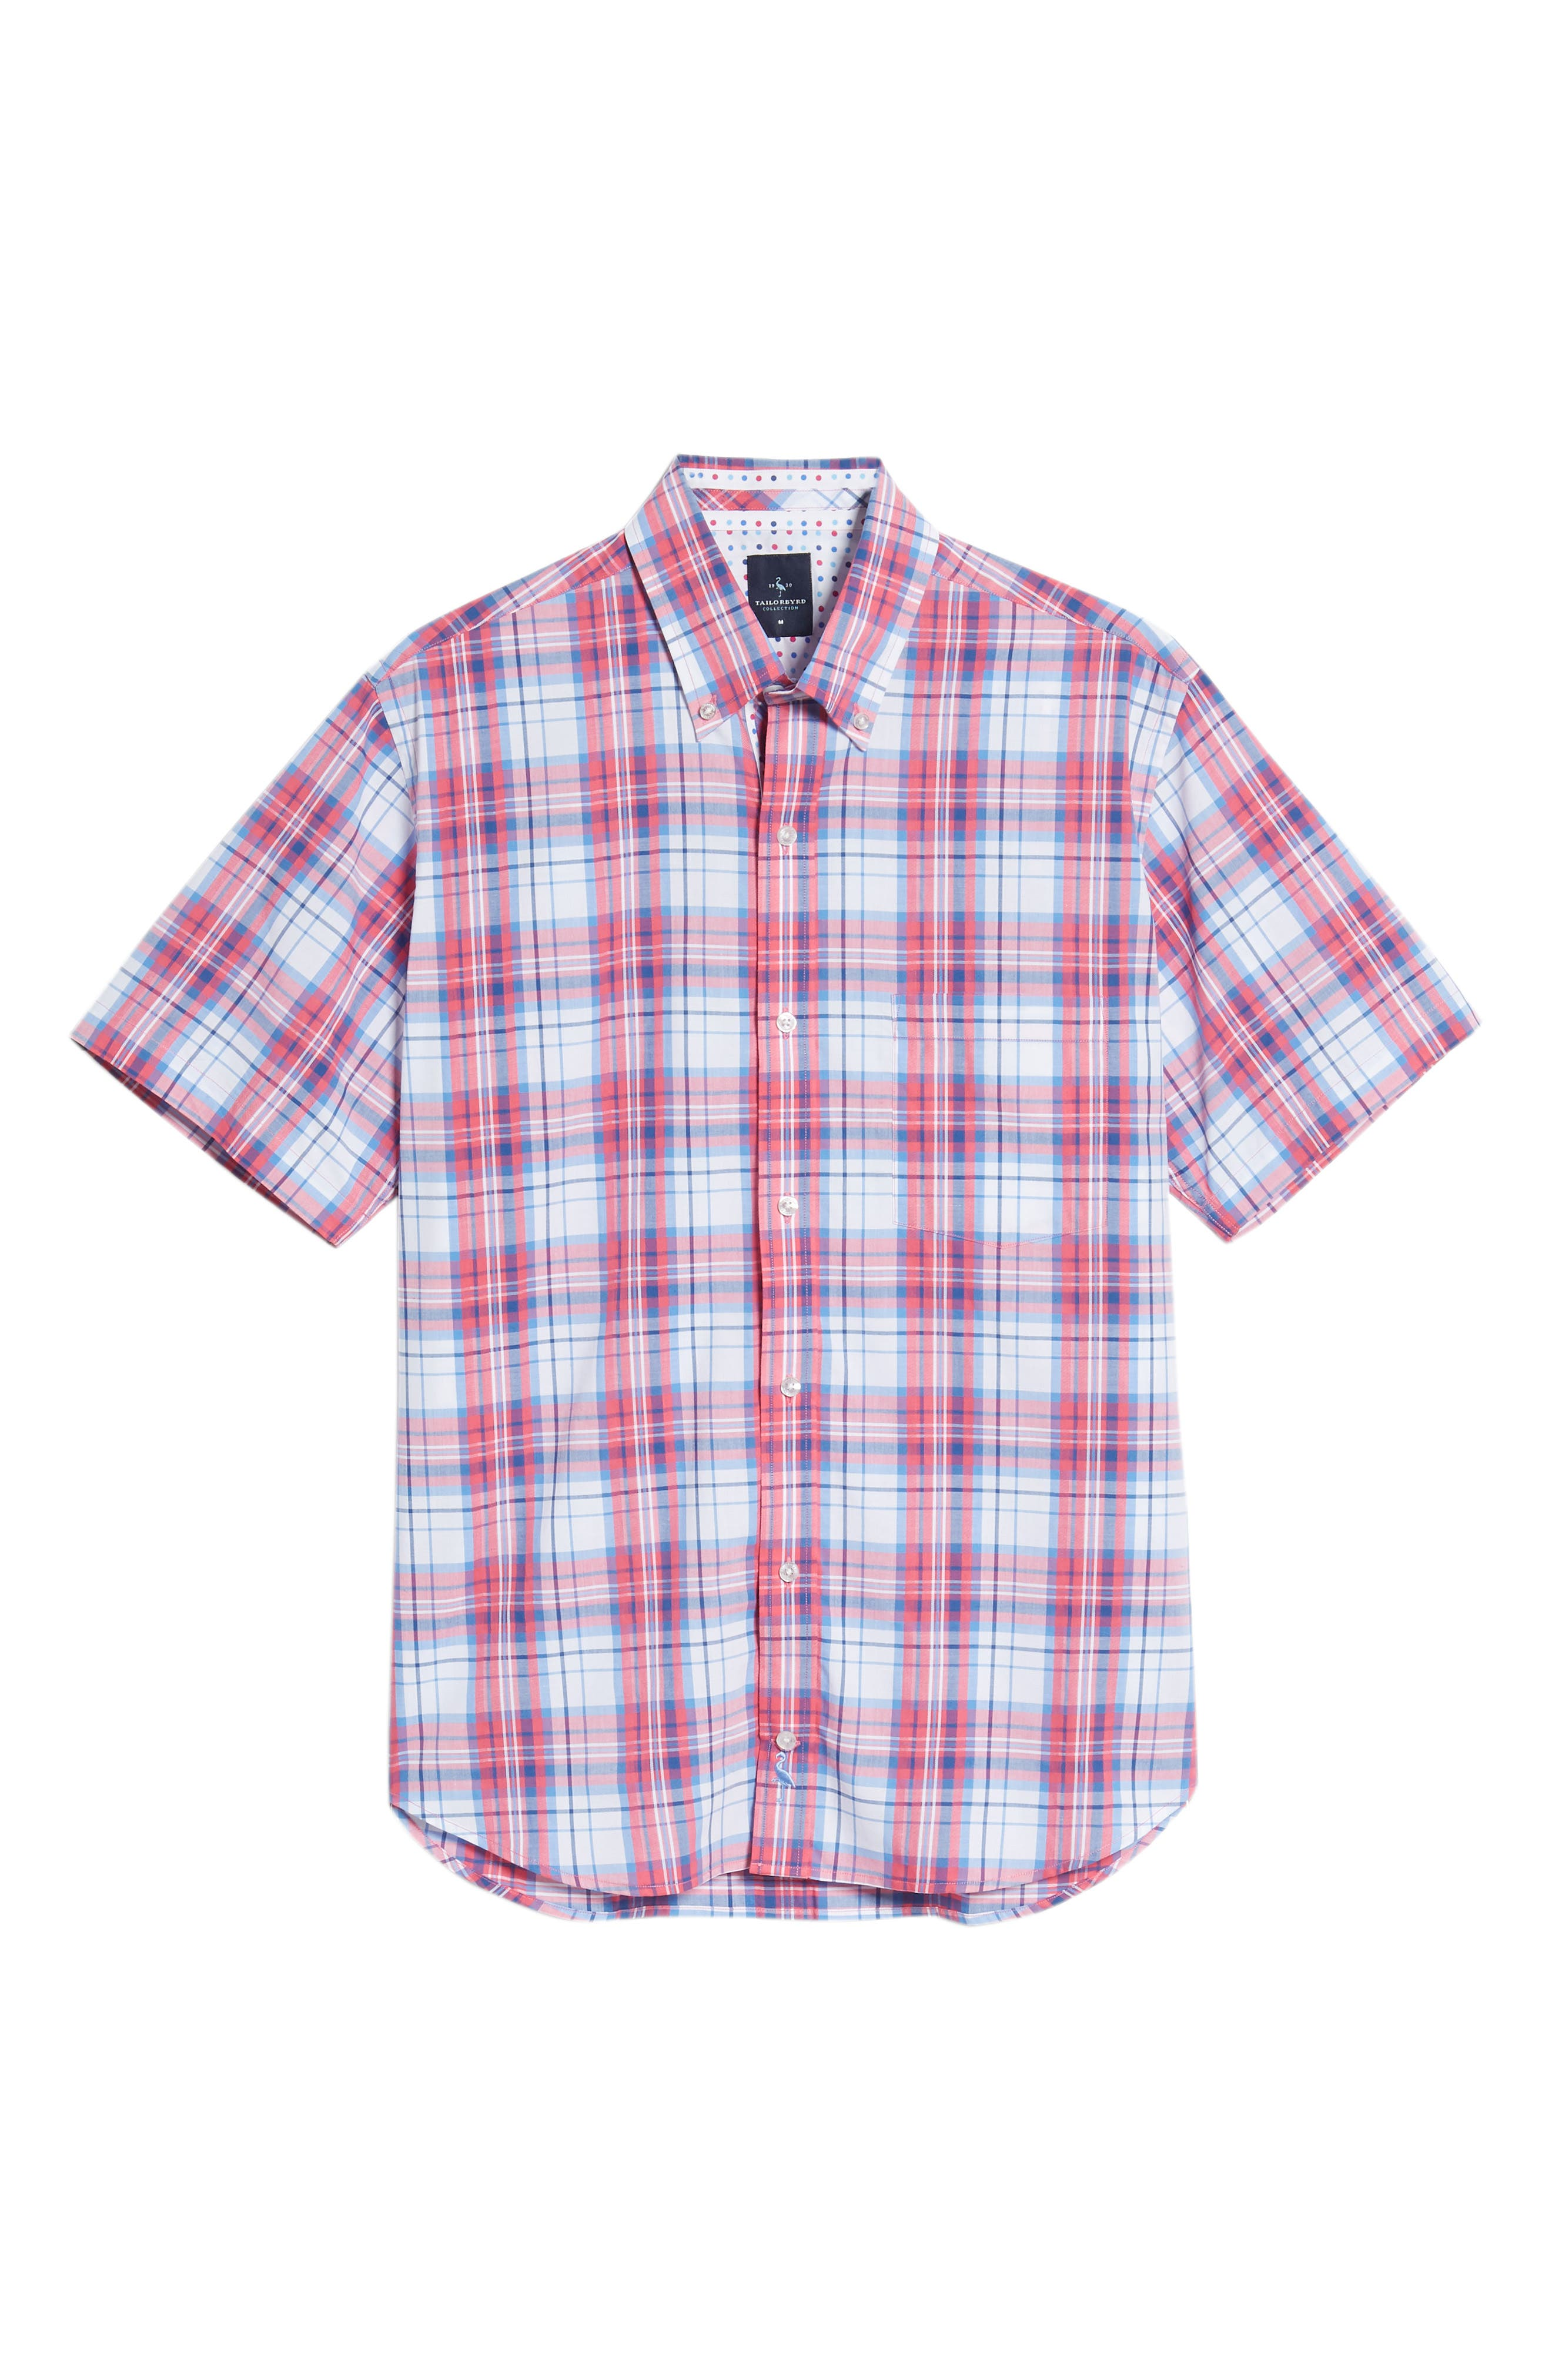 Alesso Regular Fit Plaid Sport Shirt,                             Alternate thumbnail 6, color,                             Coral